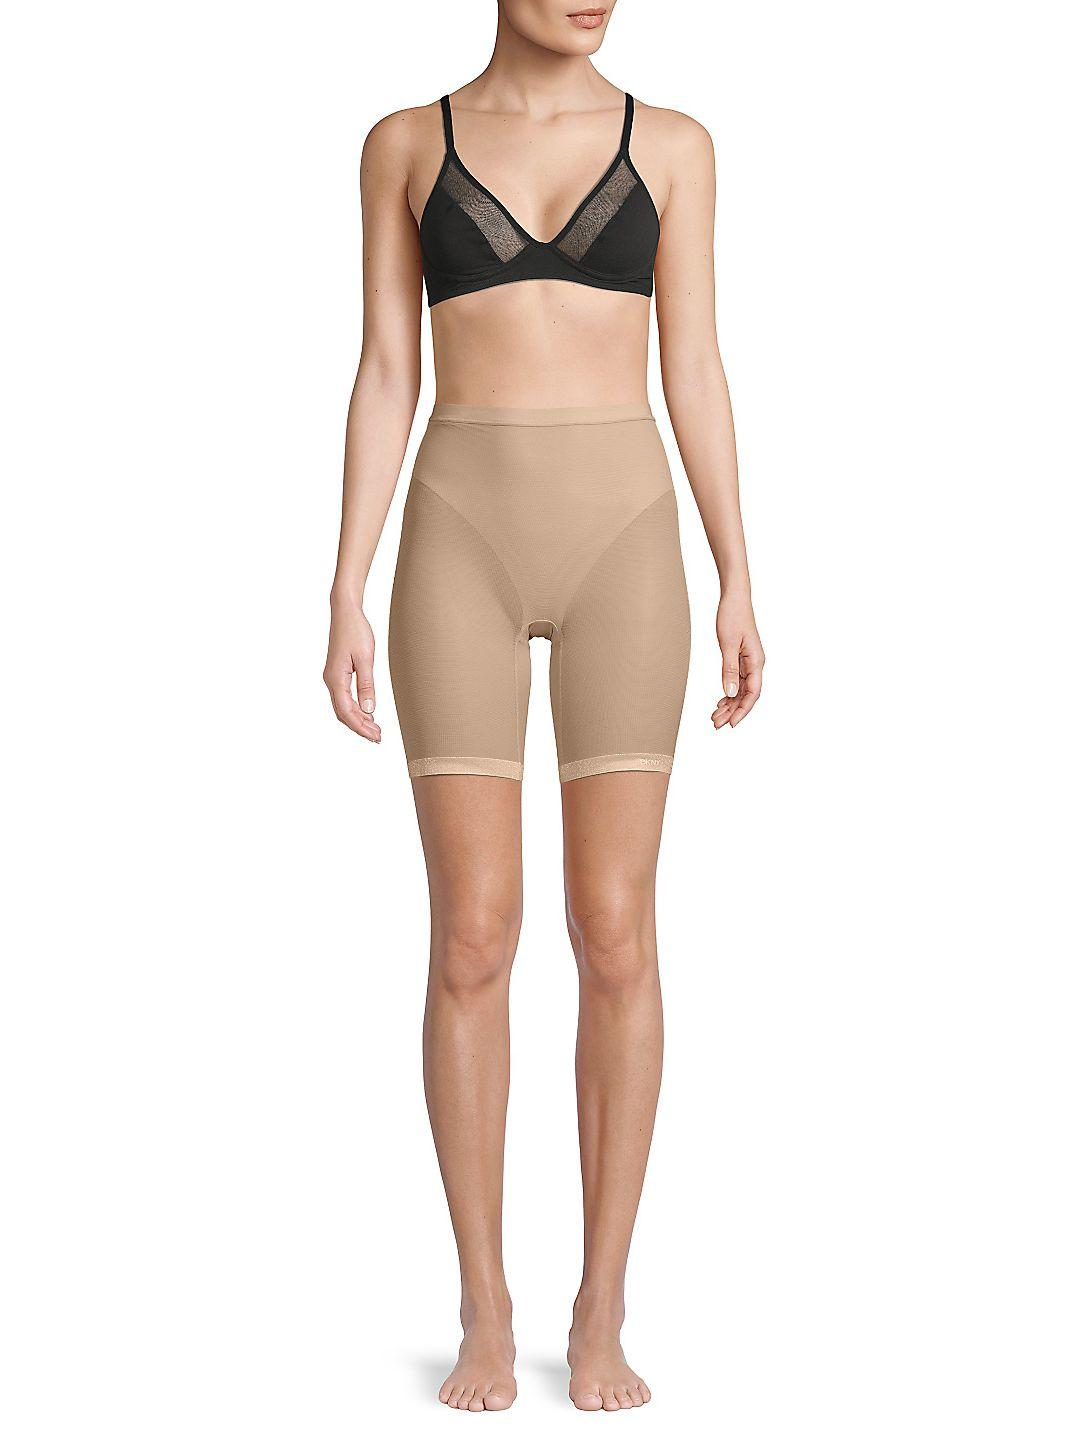 DKNY Synthetic Mesh Thigh Slimmer in Black